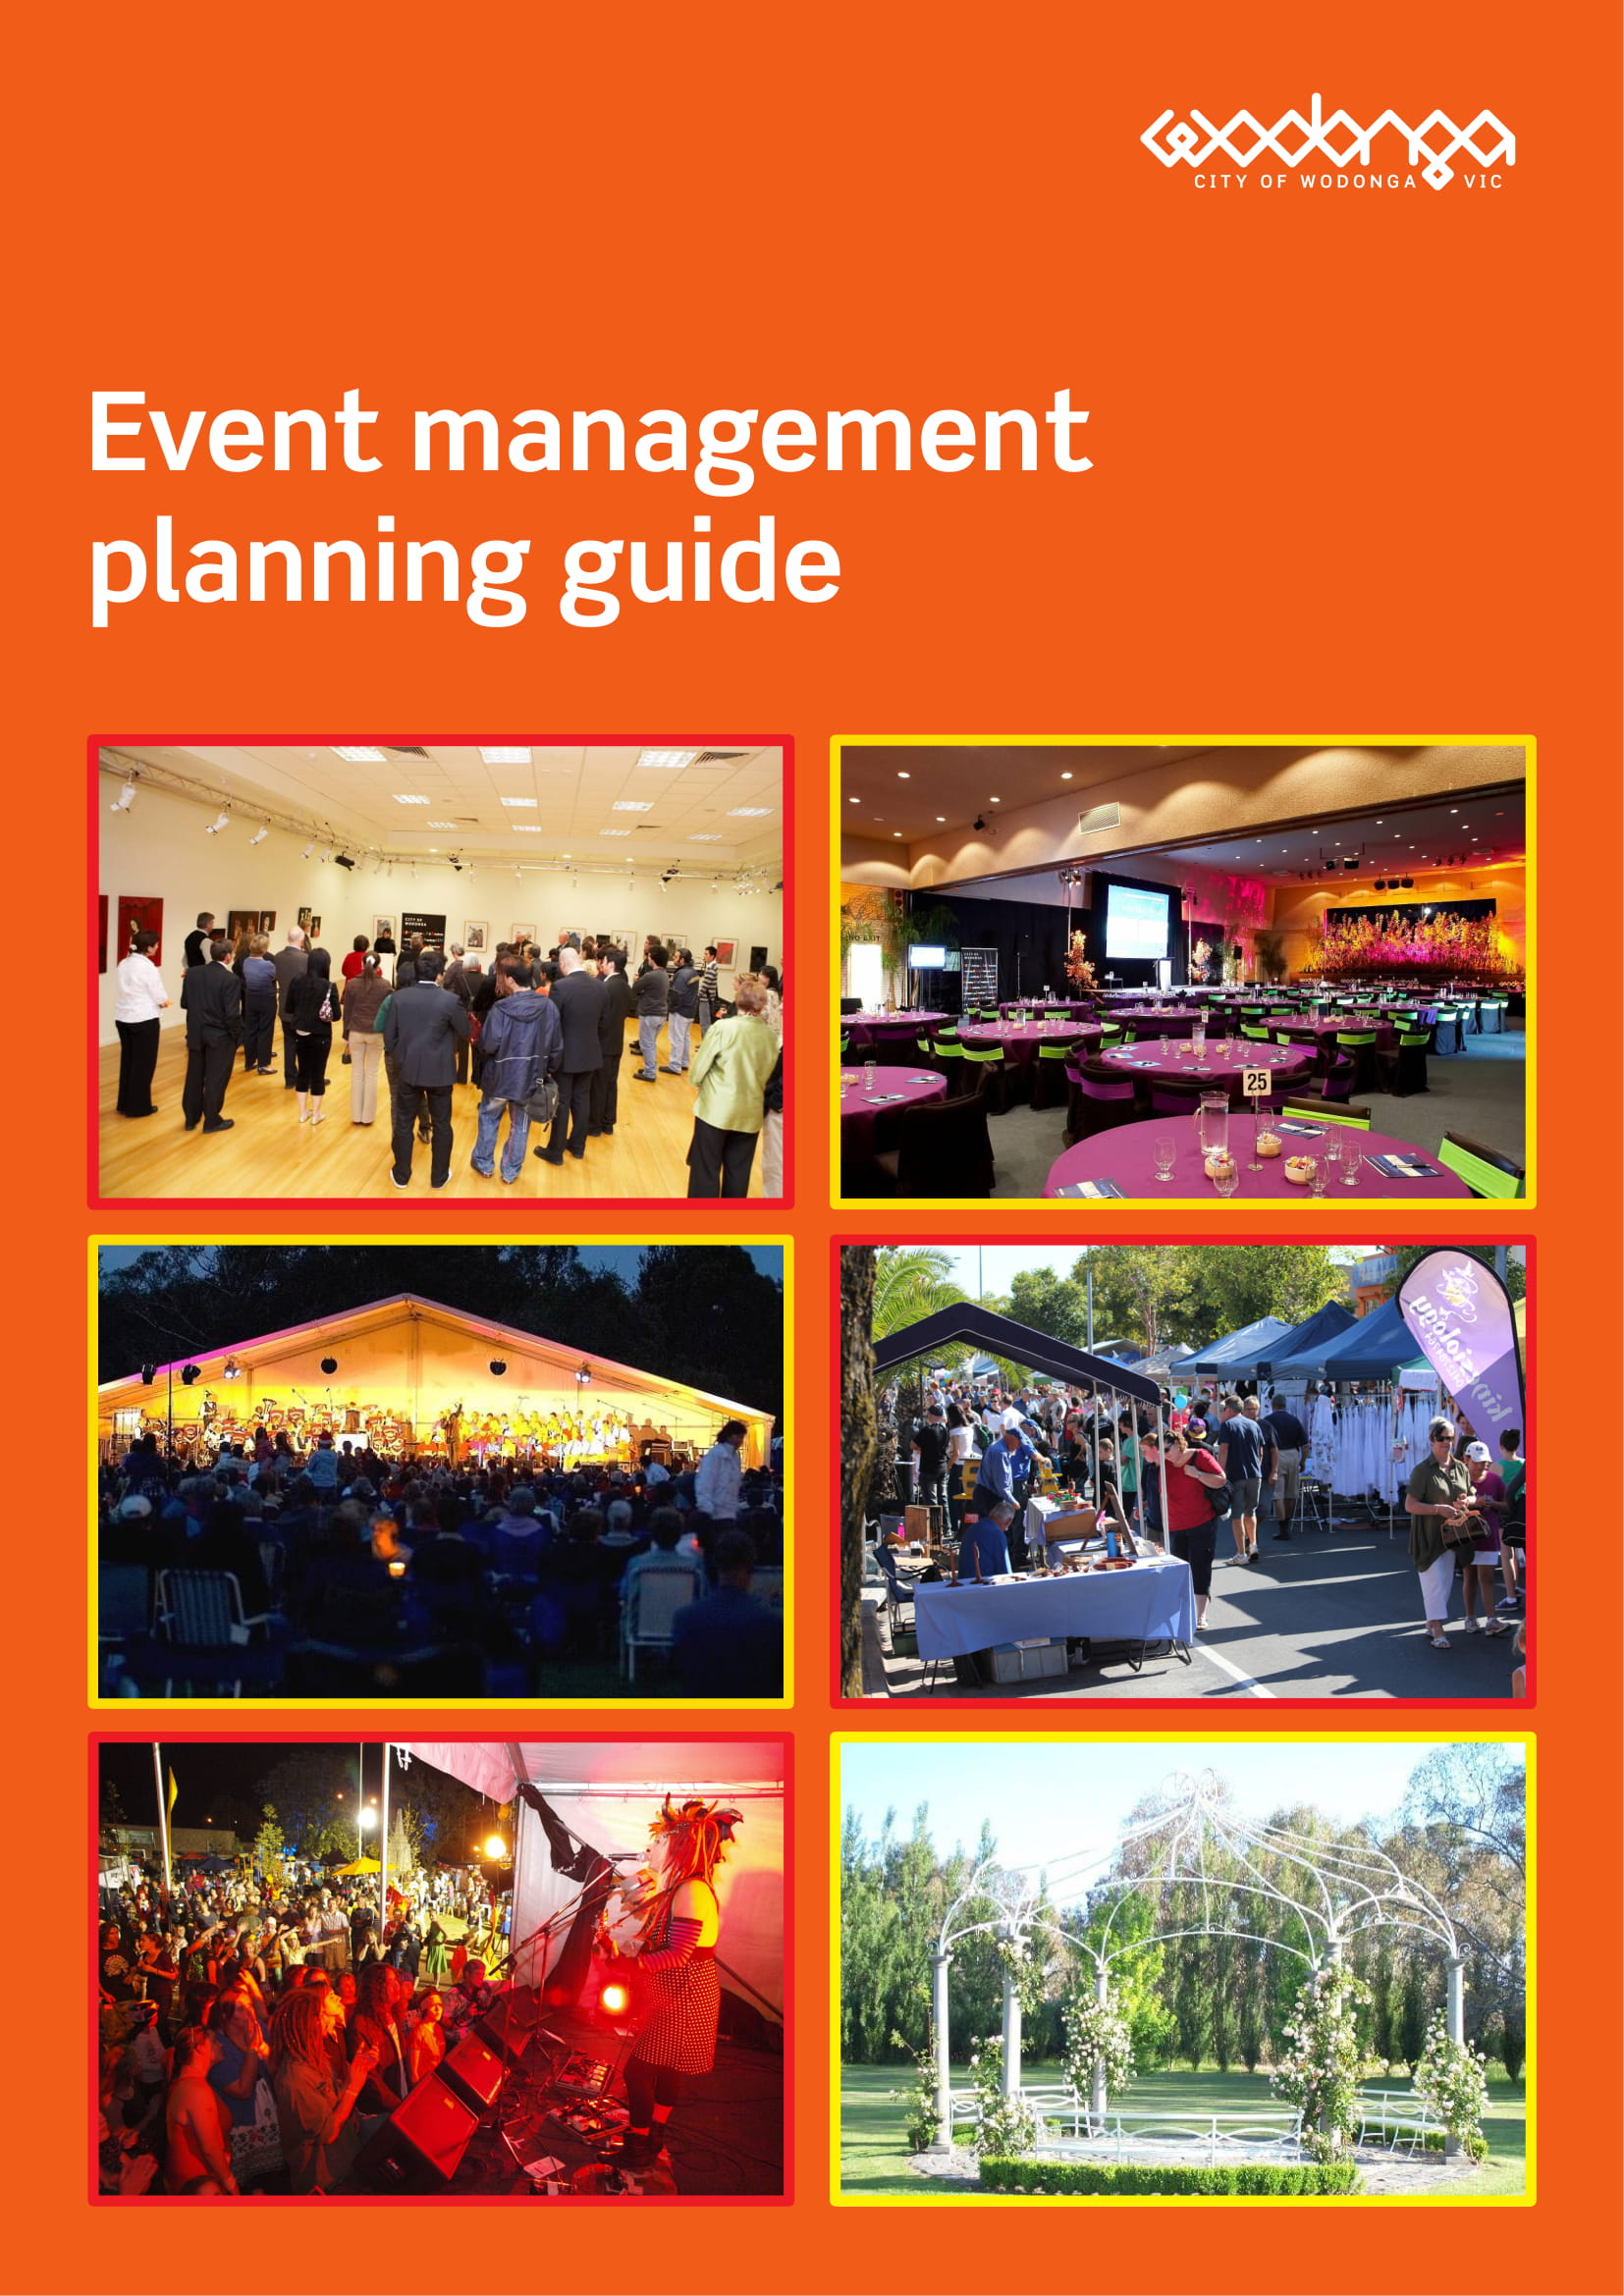 event management planning guide for event operations 01